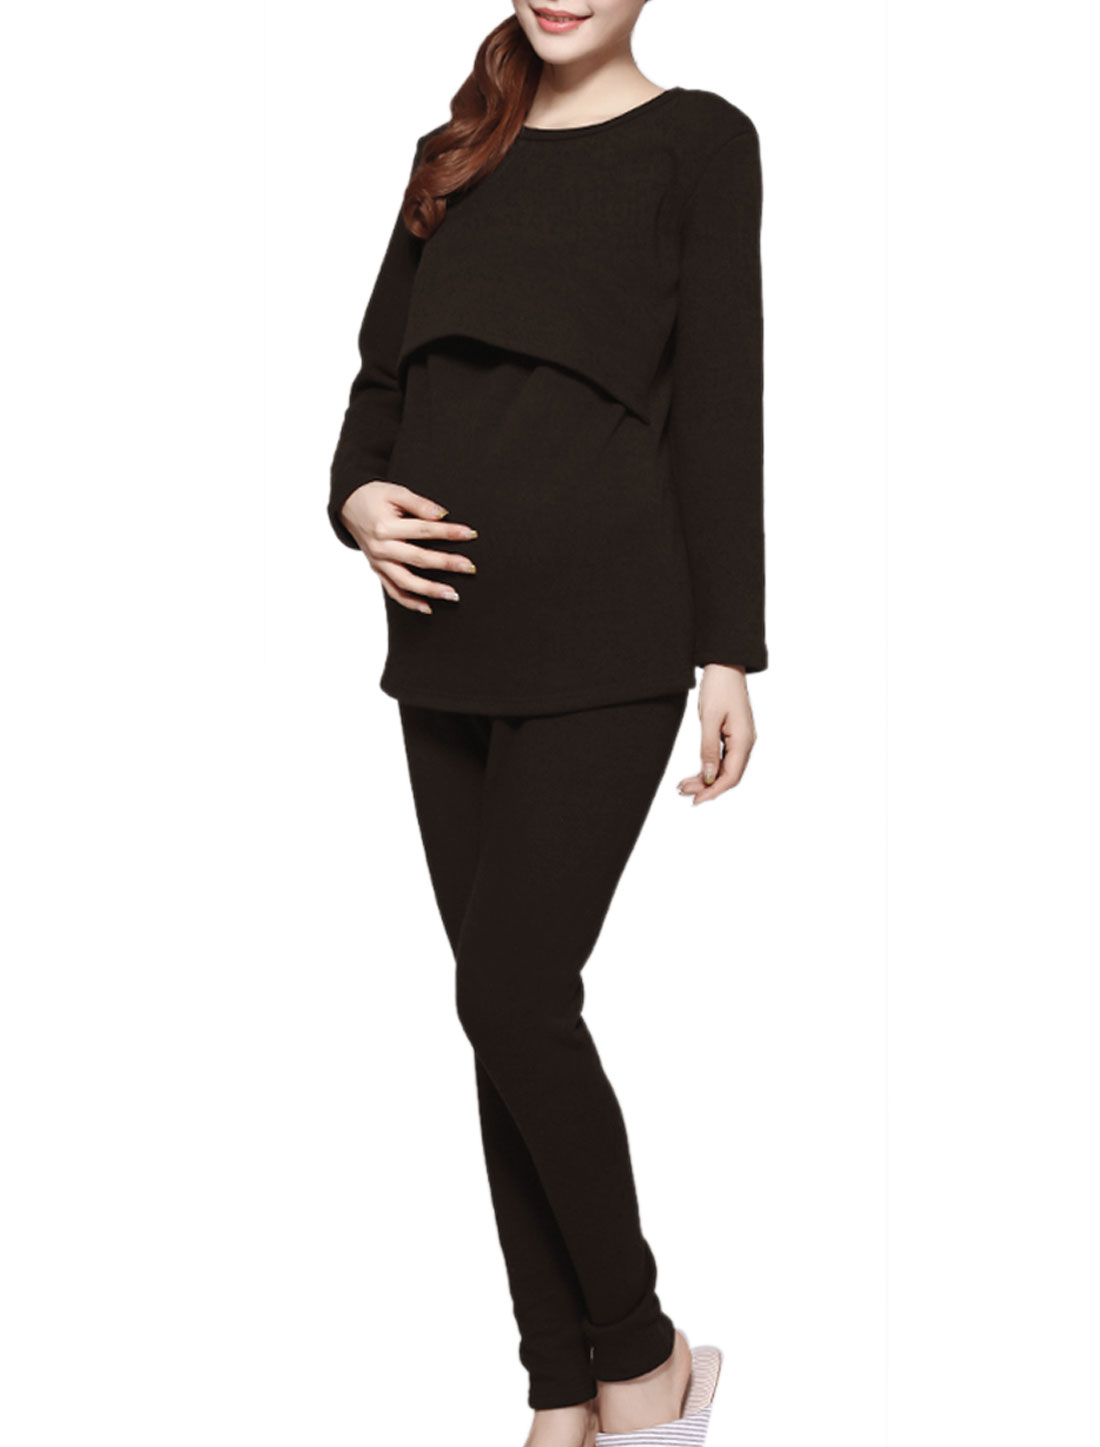 Maternity Spliced Adjustable Drawcord Pajama Sleepwear Set Coffee S